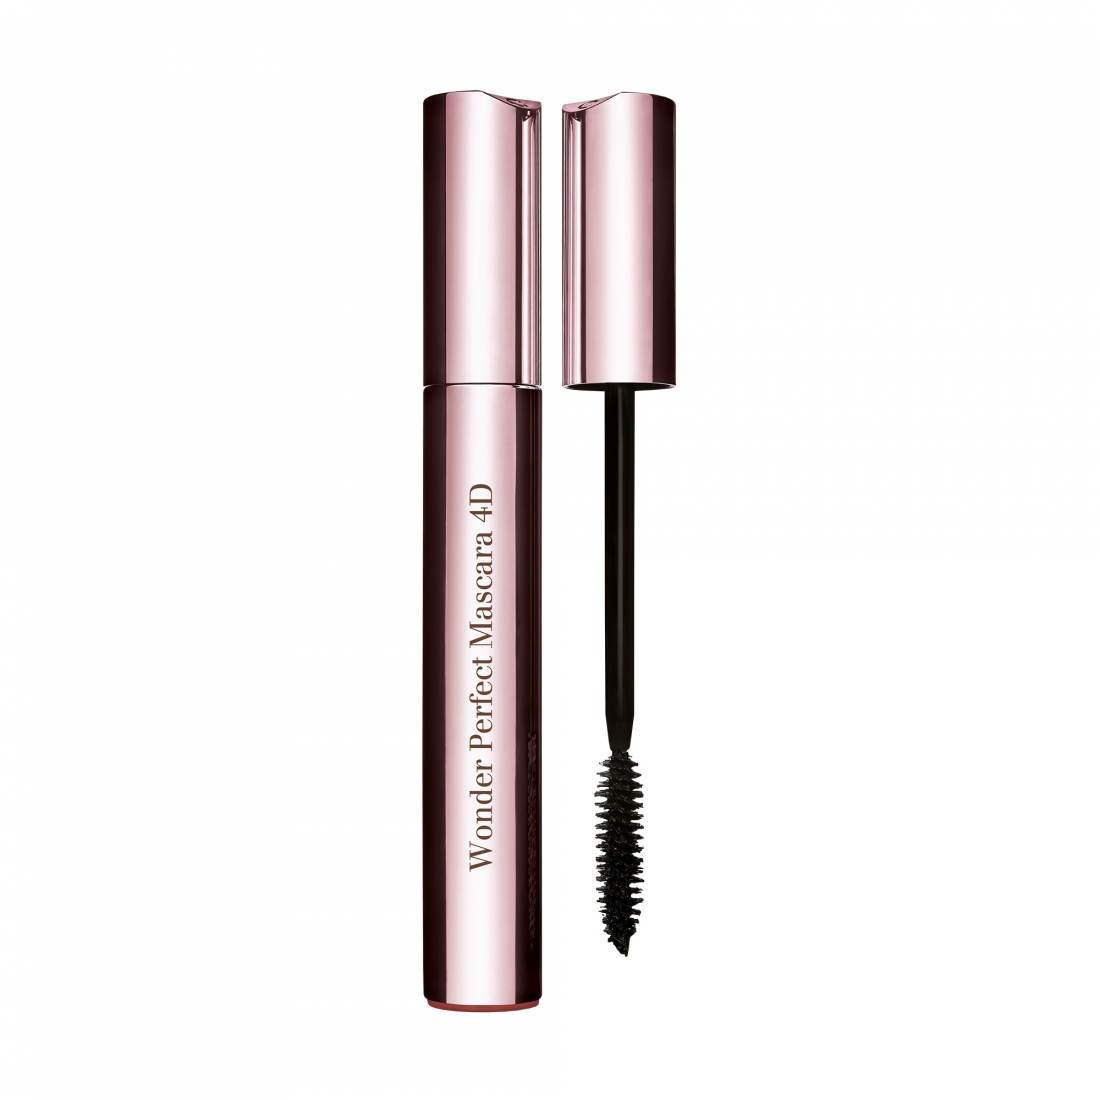 CLARINS WONDER PERFECT MASCARA 4D